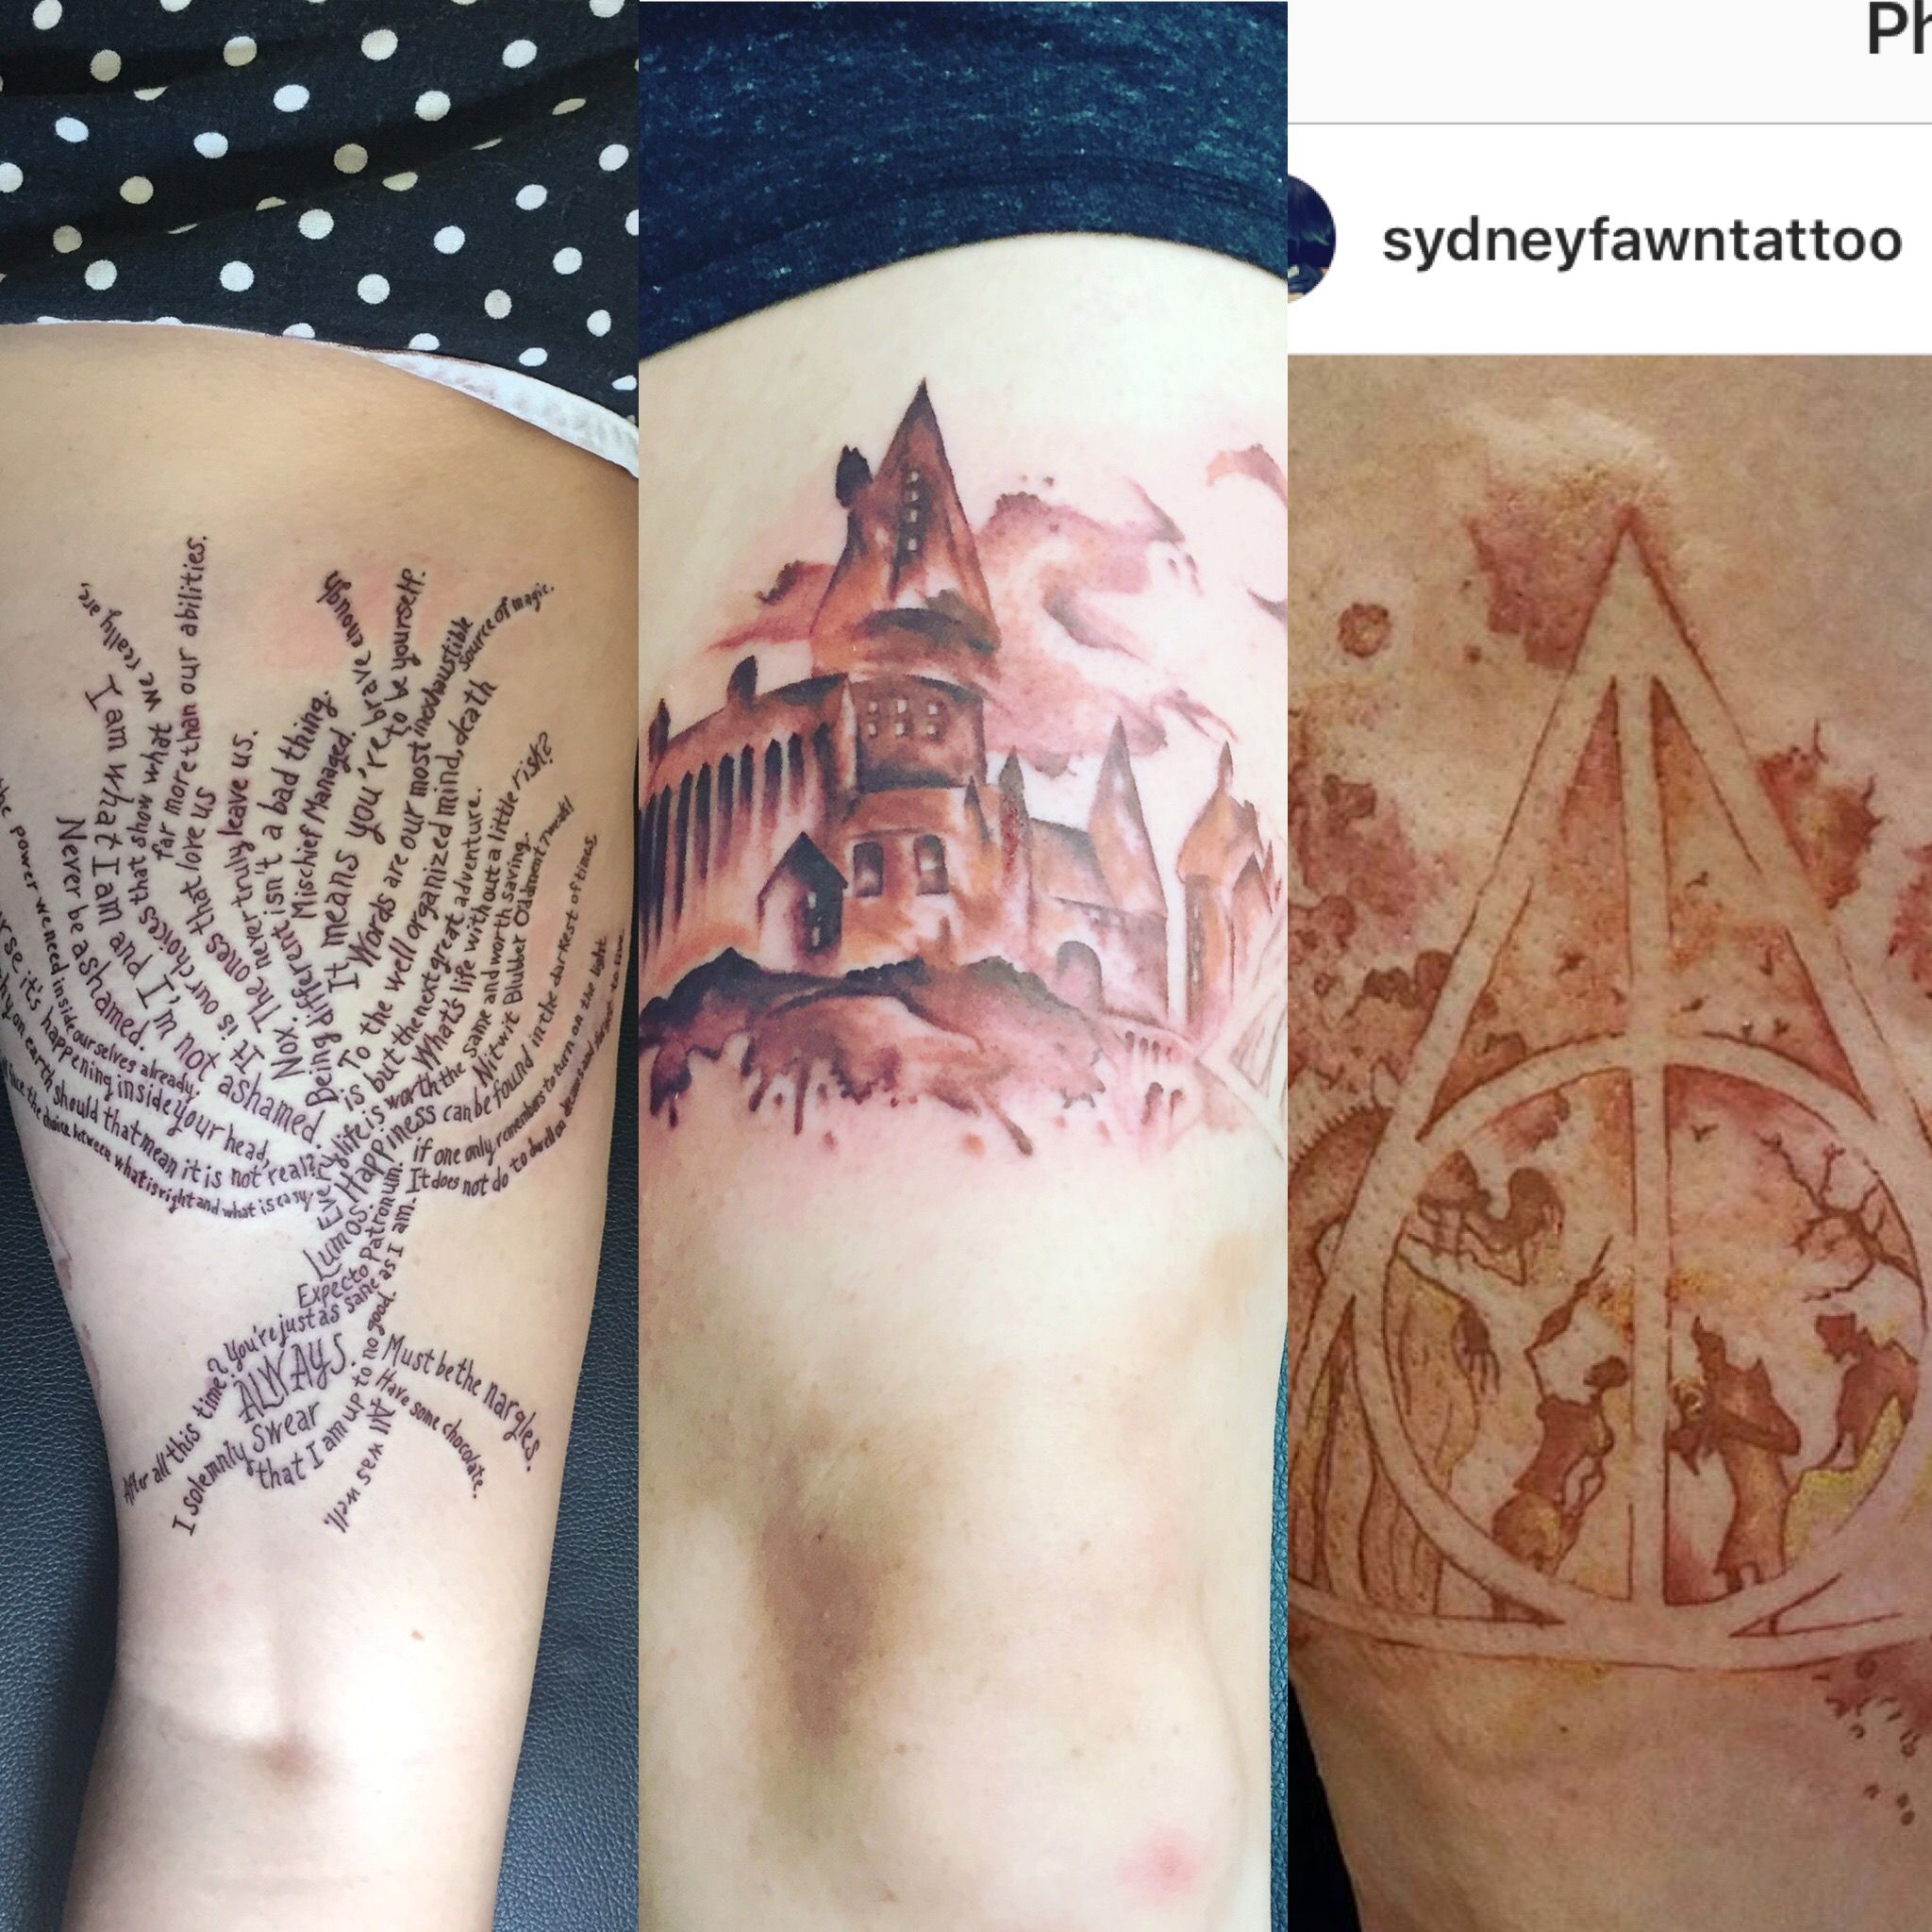 Harry Potter Tattoo Hogwarts Tattoo Whomping Willow Tattoo Harry Potter Quotes Watercolor Tattoo Redhead Tattoo Fair Hogwarts Tattoo Tattoos Tattoo Quotes